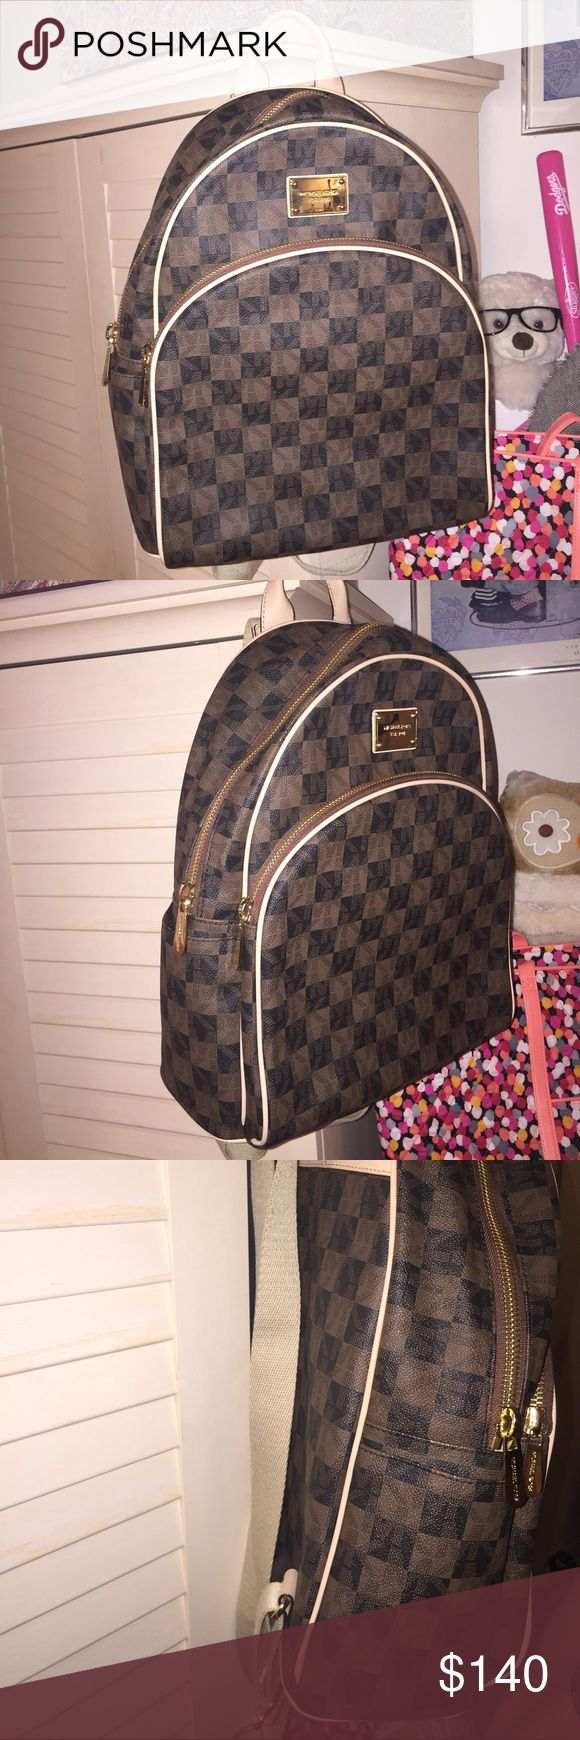 Large size Michael Kors Checkered Backpack School size, worn two times, good condition, minor wear on the patina. never came with a dust bag but will be shipped in another kind. Retail $300 plus tax so my price is FIRM! thanks for looking Michael Kors Bags Backpacks